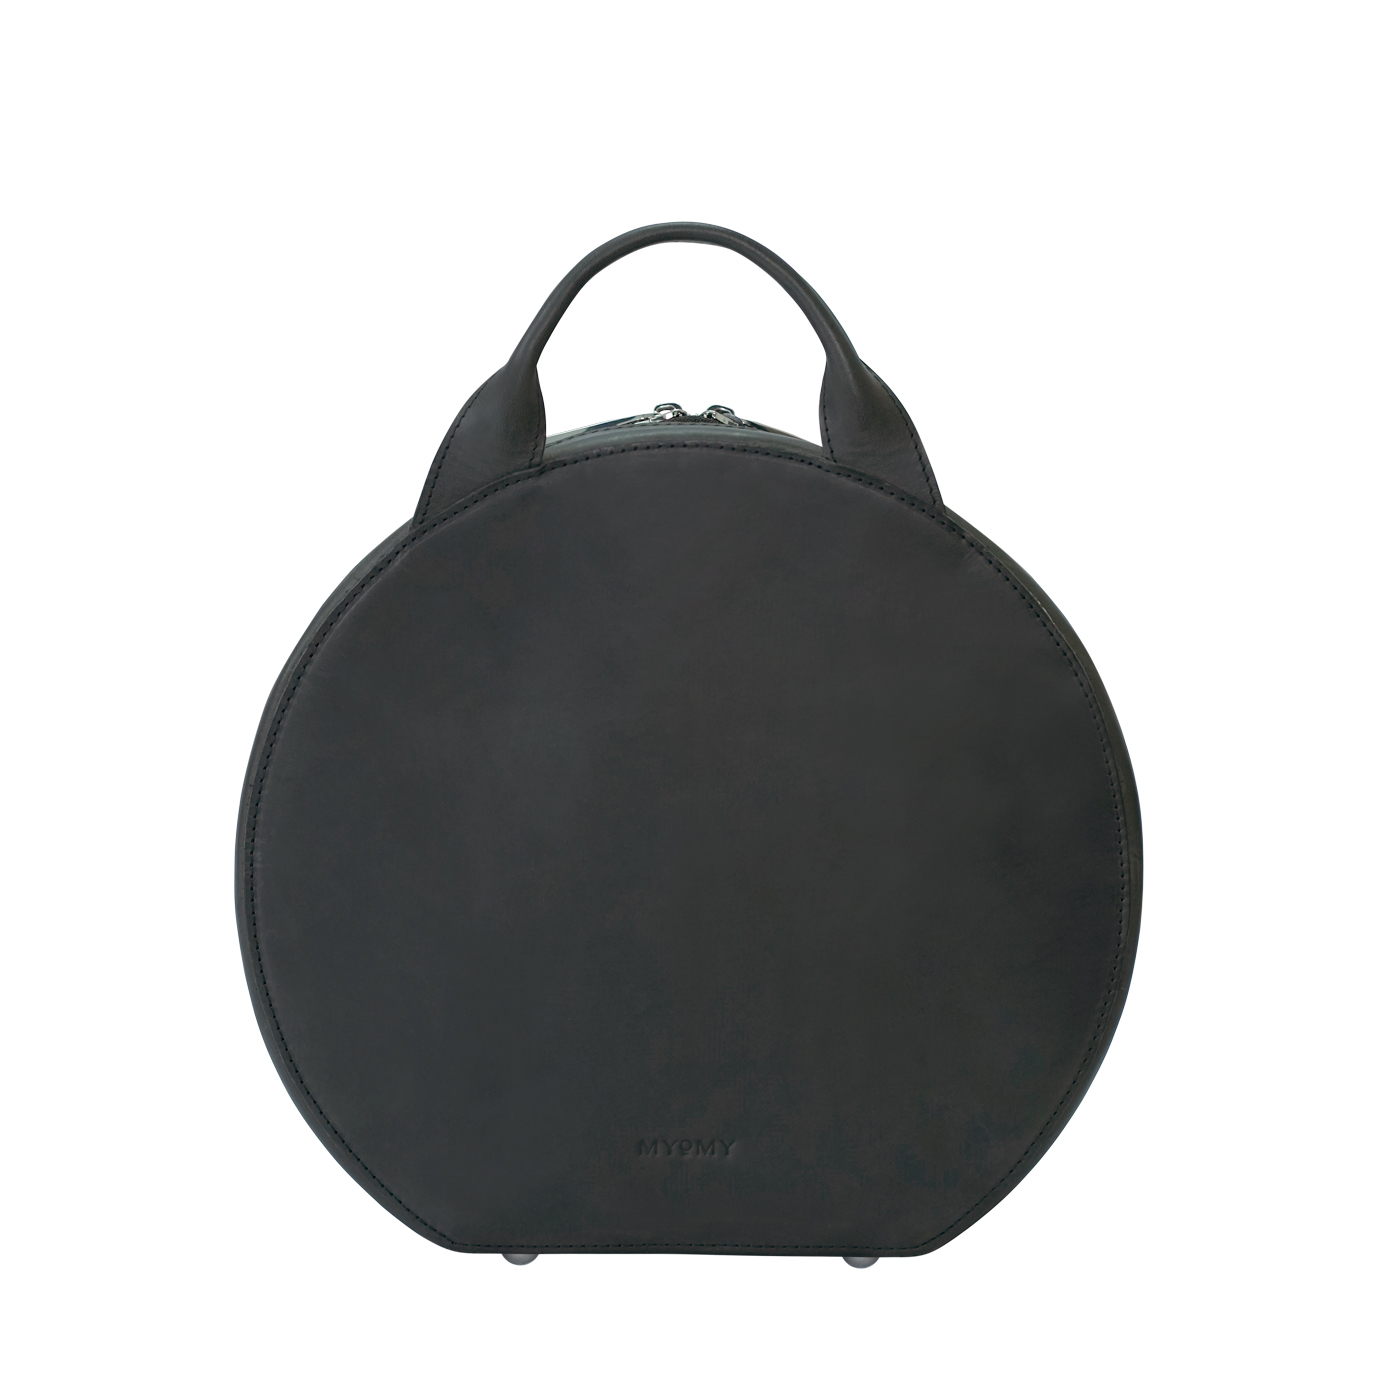 MY BOXY BAG Cookie backbag - hunter off-black